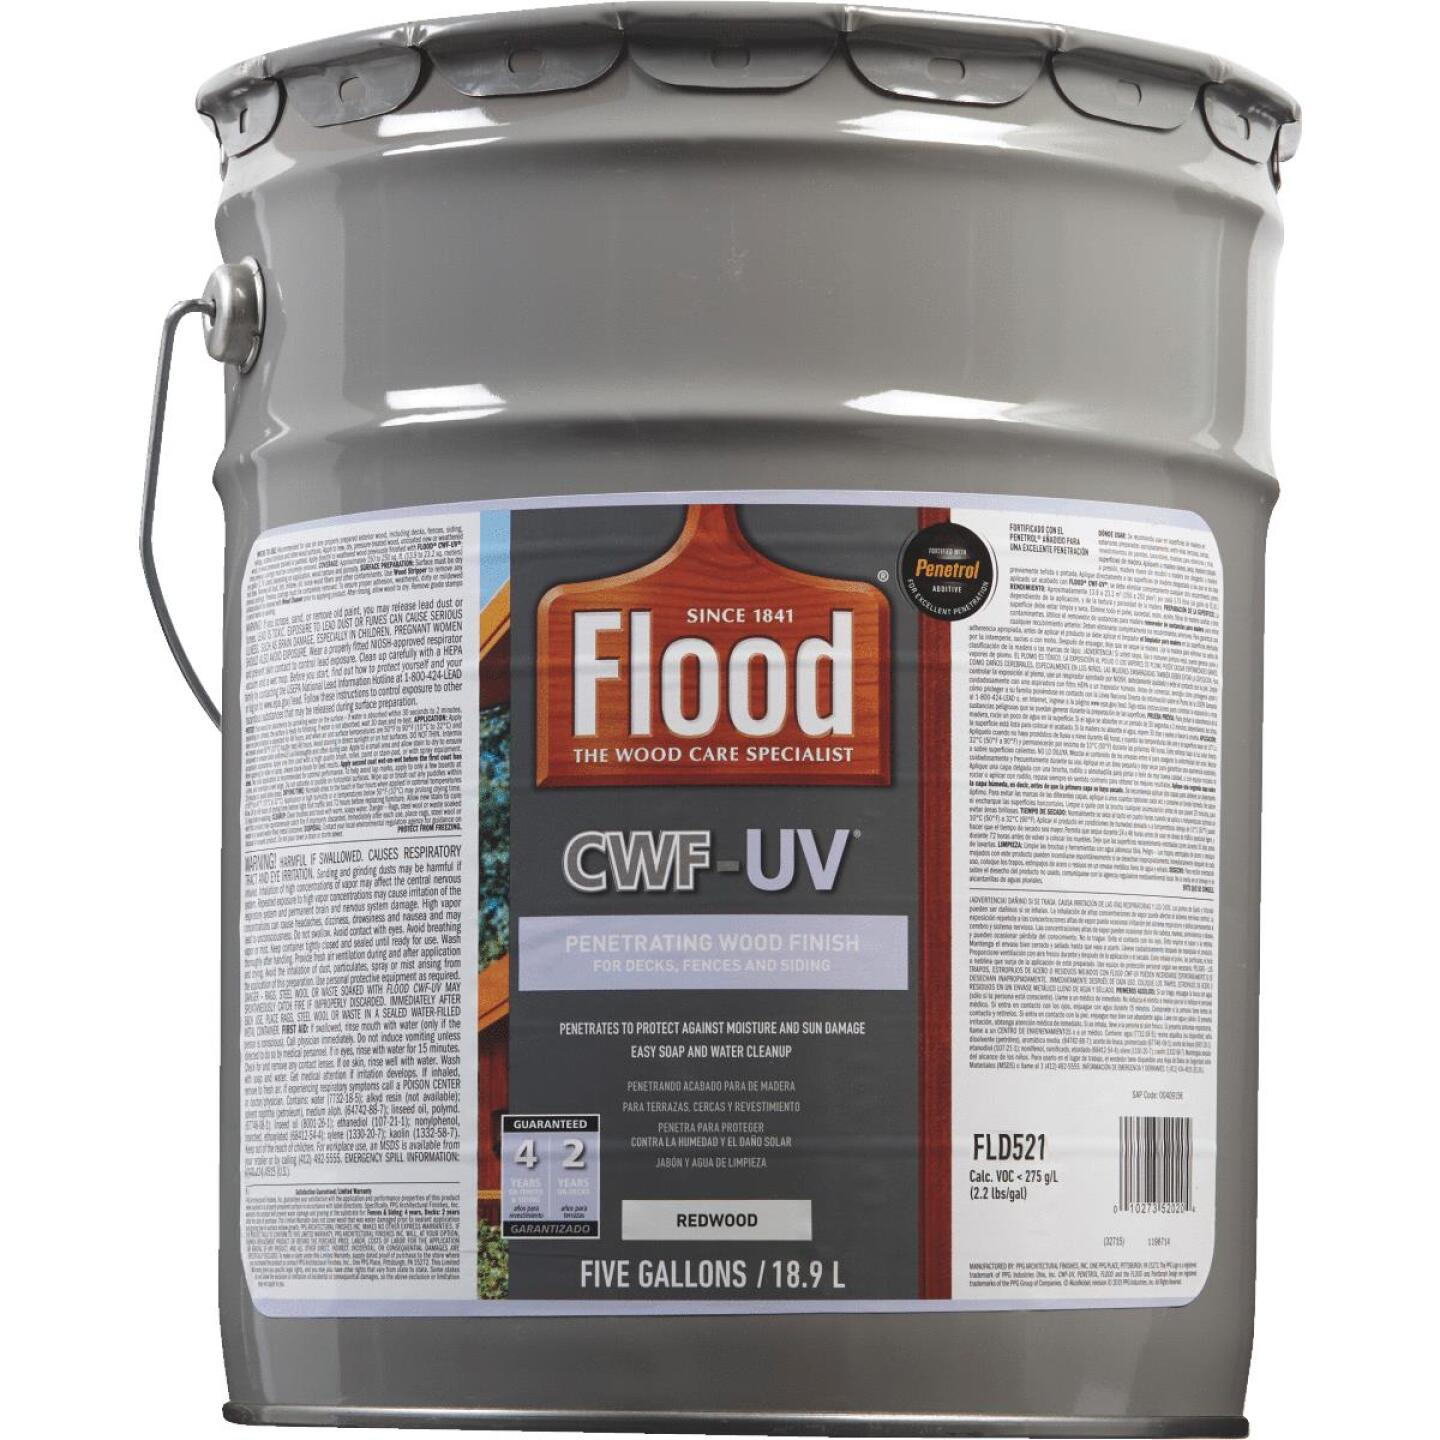 Flood CWF-UV Oil-Modified Fence Deck and Siding Wood Finish, Redwood, 5 Gal. Image 2